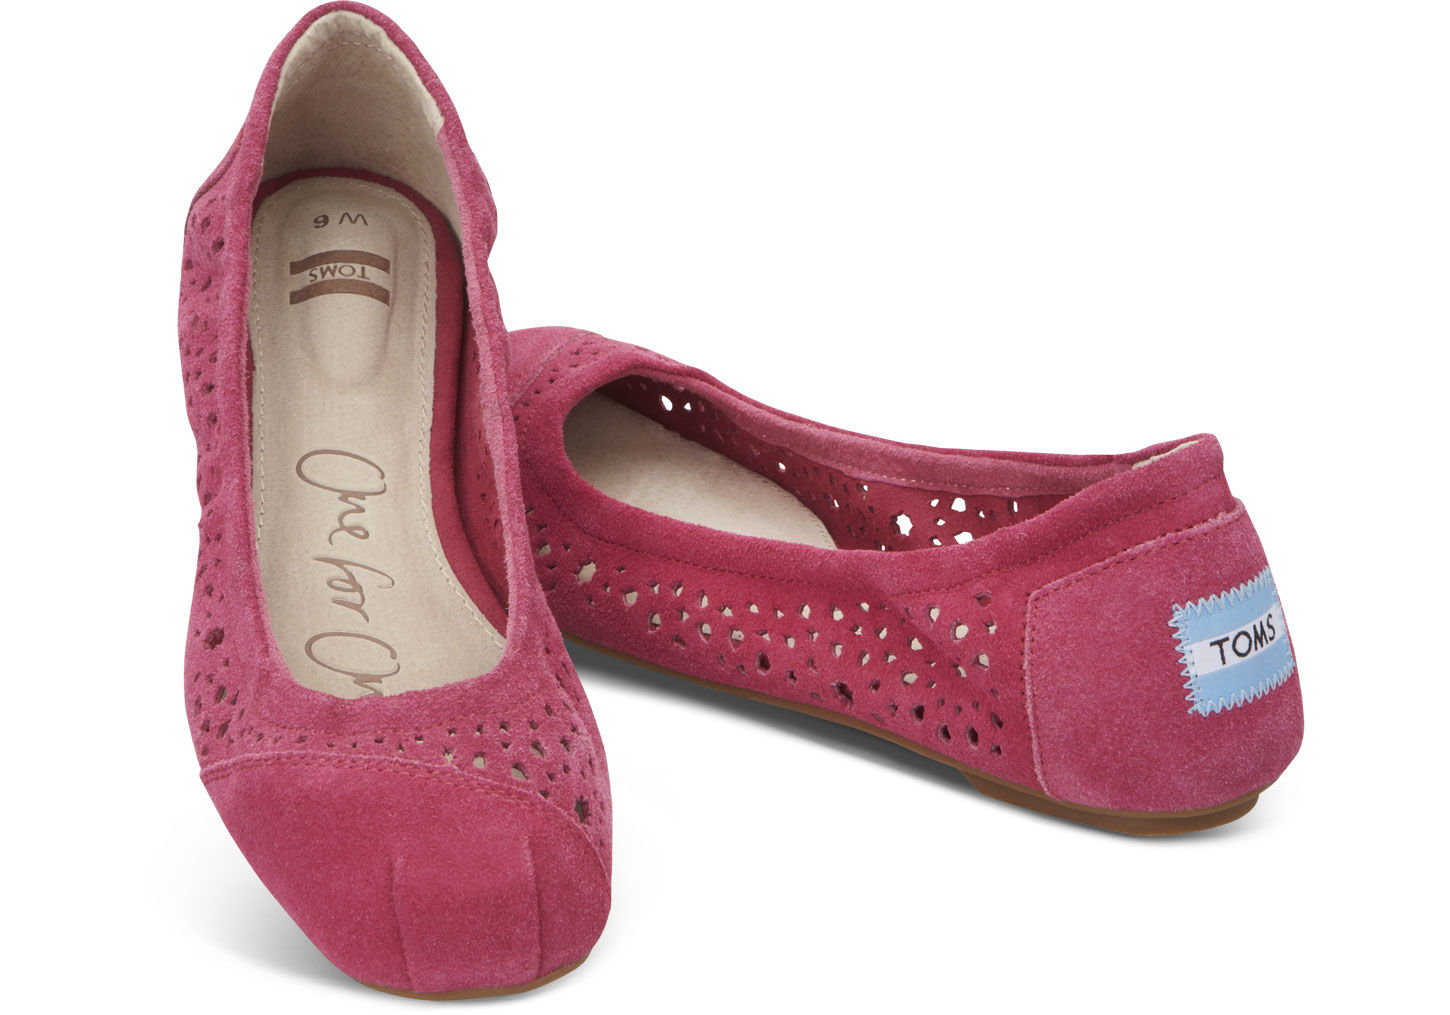 See all results for pink ballet flats for women. ANNA. Dana Women's Classic Ballerina Flats Elastic Crossing Straps. from $ 1 99 Prime. out of 5 stars 2, Shoes8teen. Shoes 18 Womens Classic Round Toe Ballerina Ballet Flat Shoes. from $ 6 99 Prime. out of 5 stars 1, STELLE.